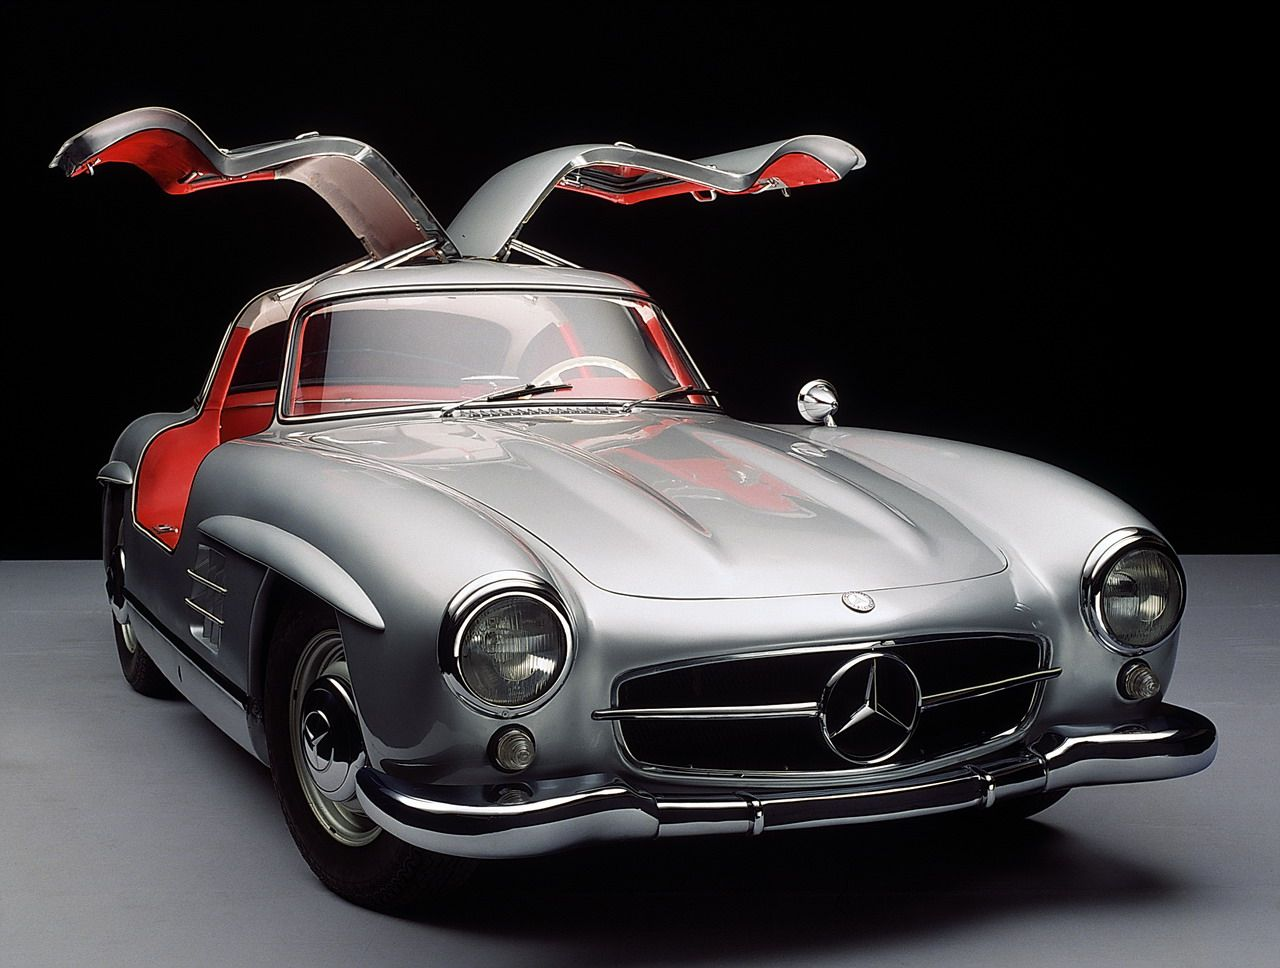 Marvelous Mercedes Benz 300SL Gullwing